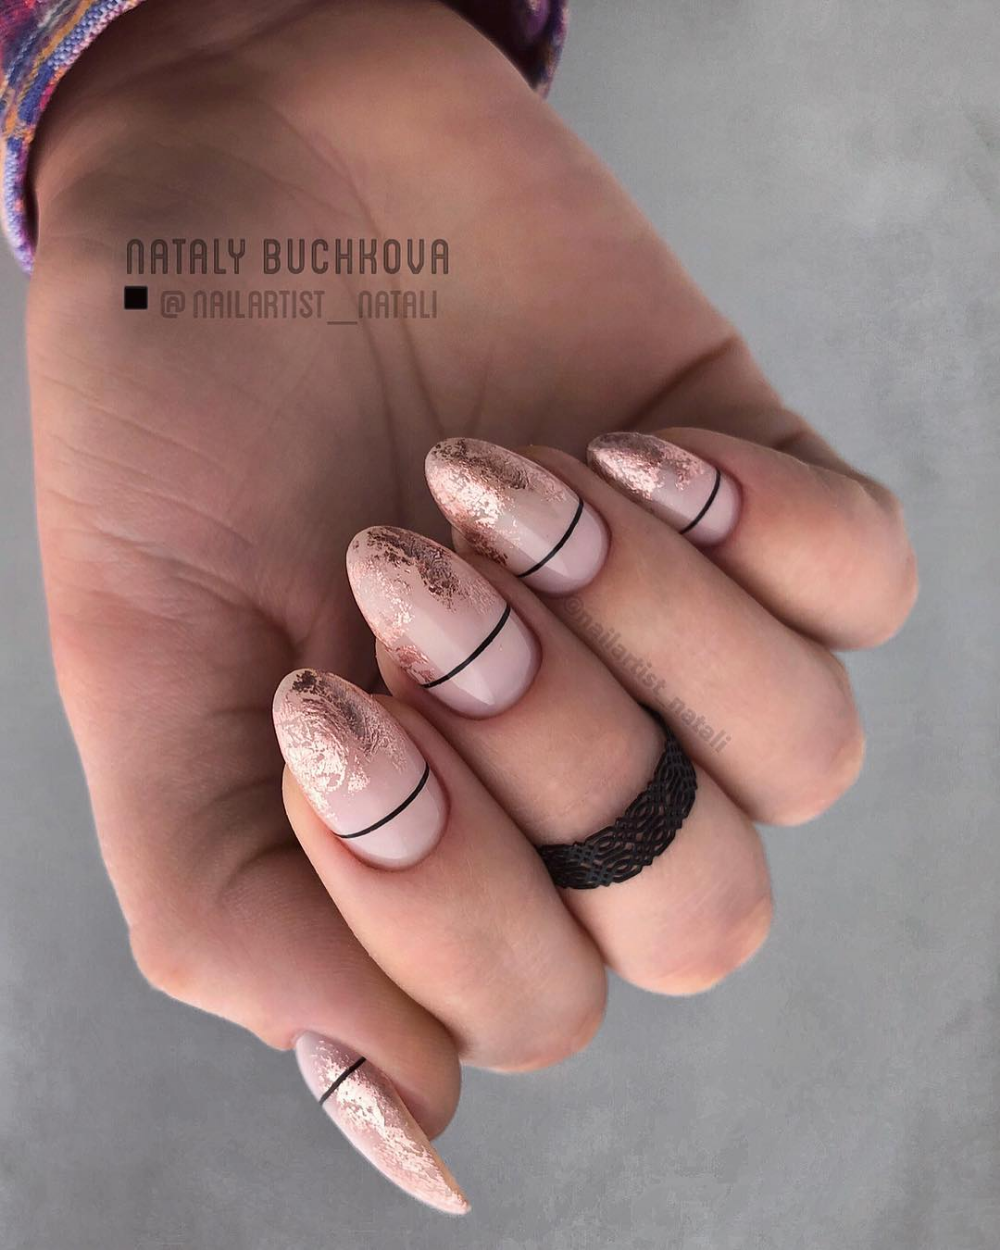 70 Attractive Oval Nail Art Designs And Ideas In 2019 In 2020